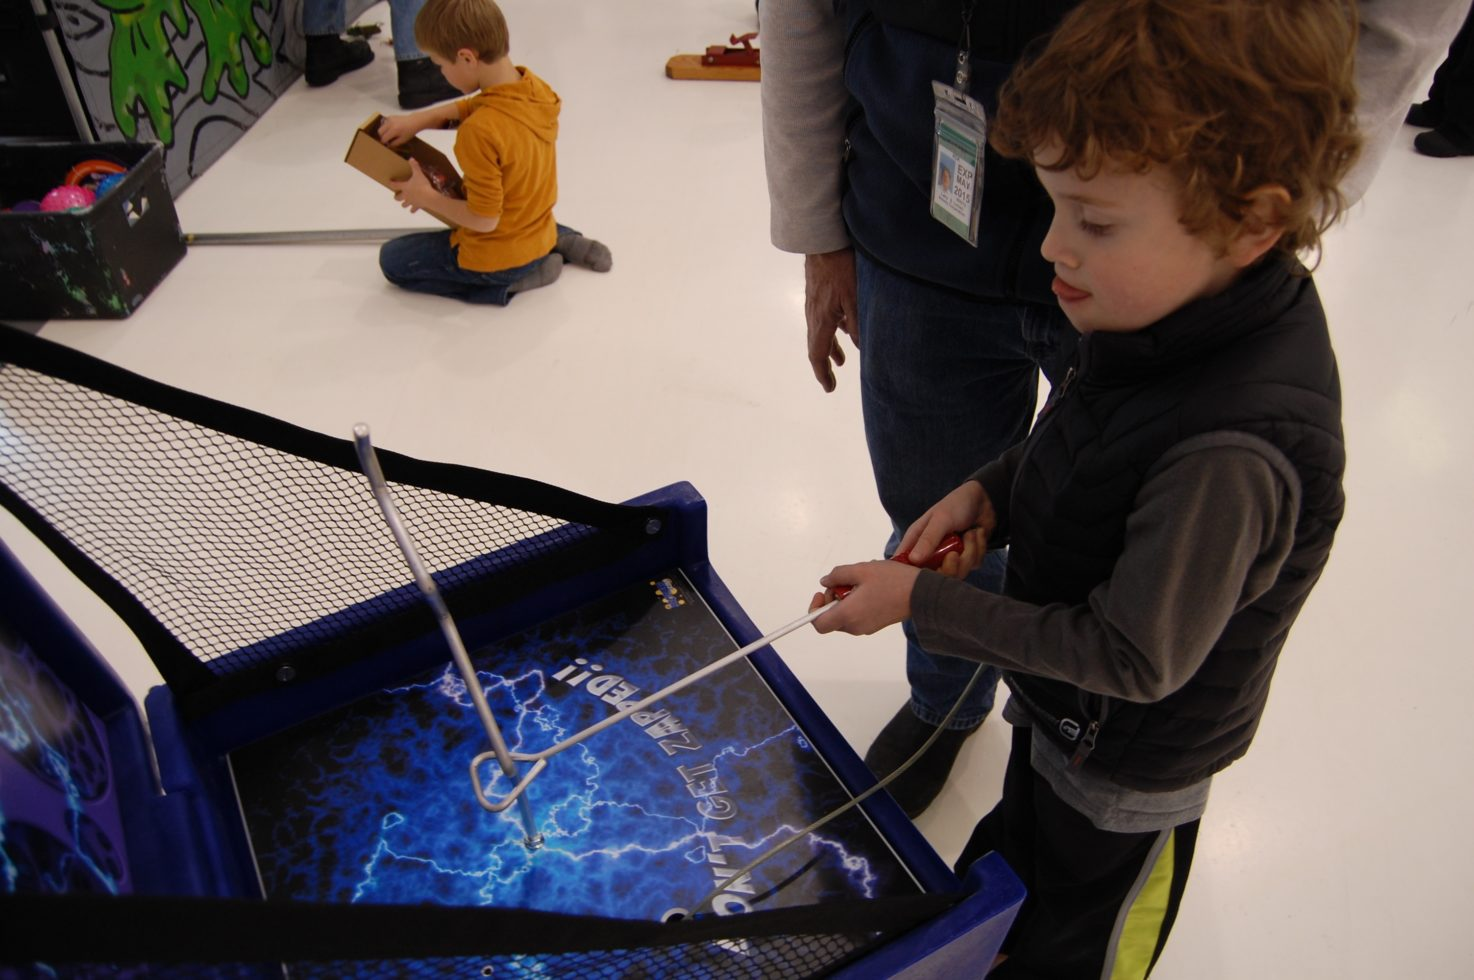 Boy playing shockwave carnival game